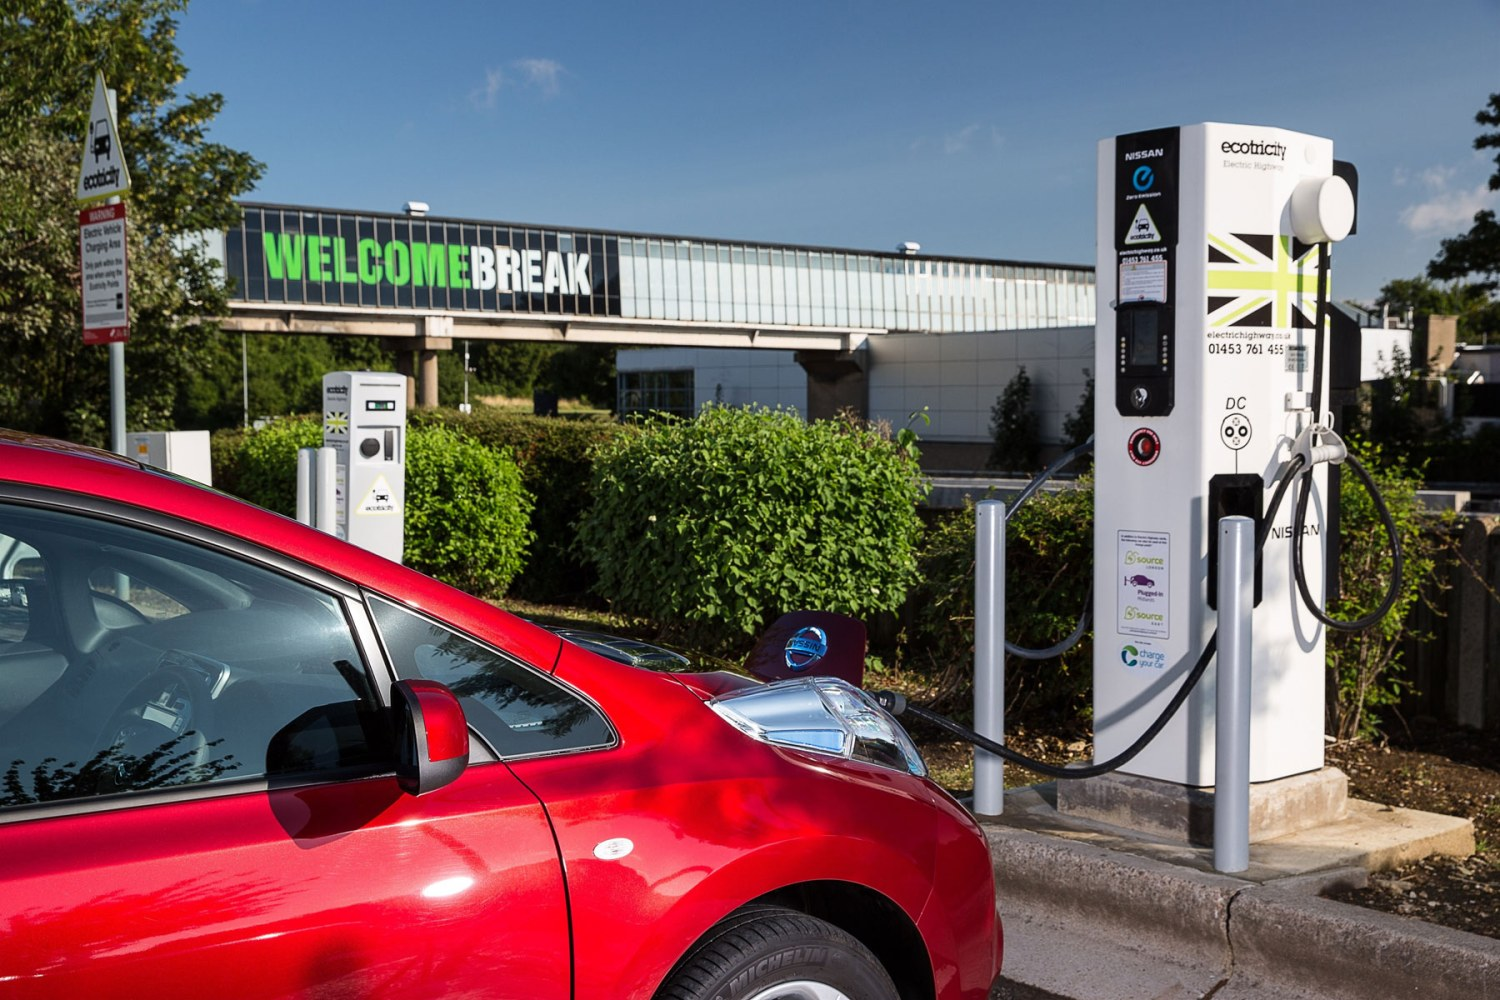 £540 million investment in electric cars